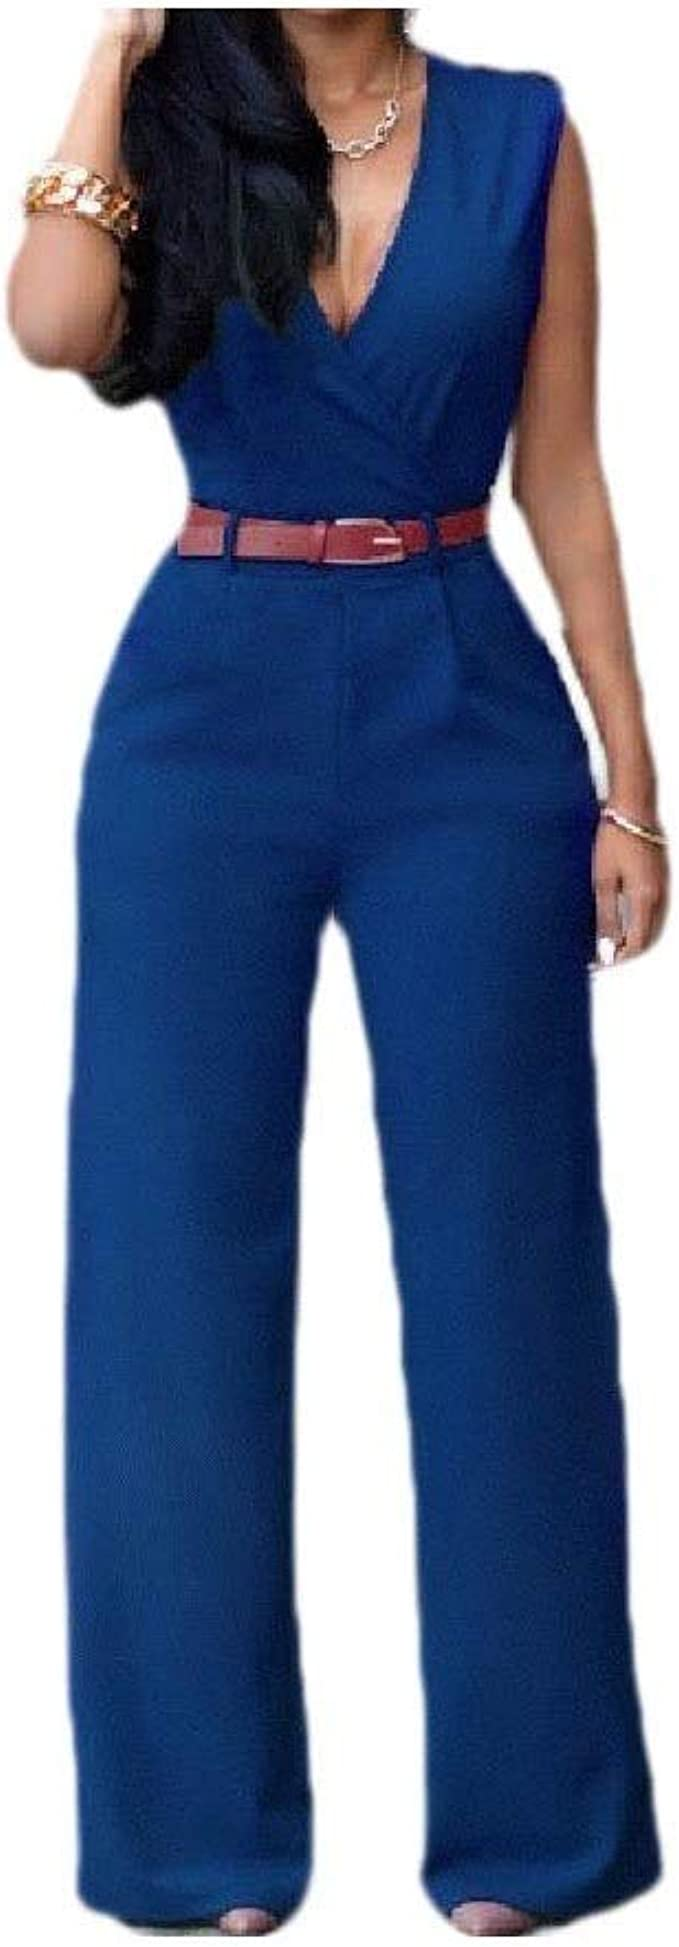 EnergyWD Womens With Belt Solid High Waist V Neck Slim Wide Leg Long Pant Playsuit